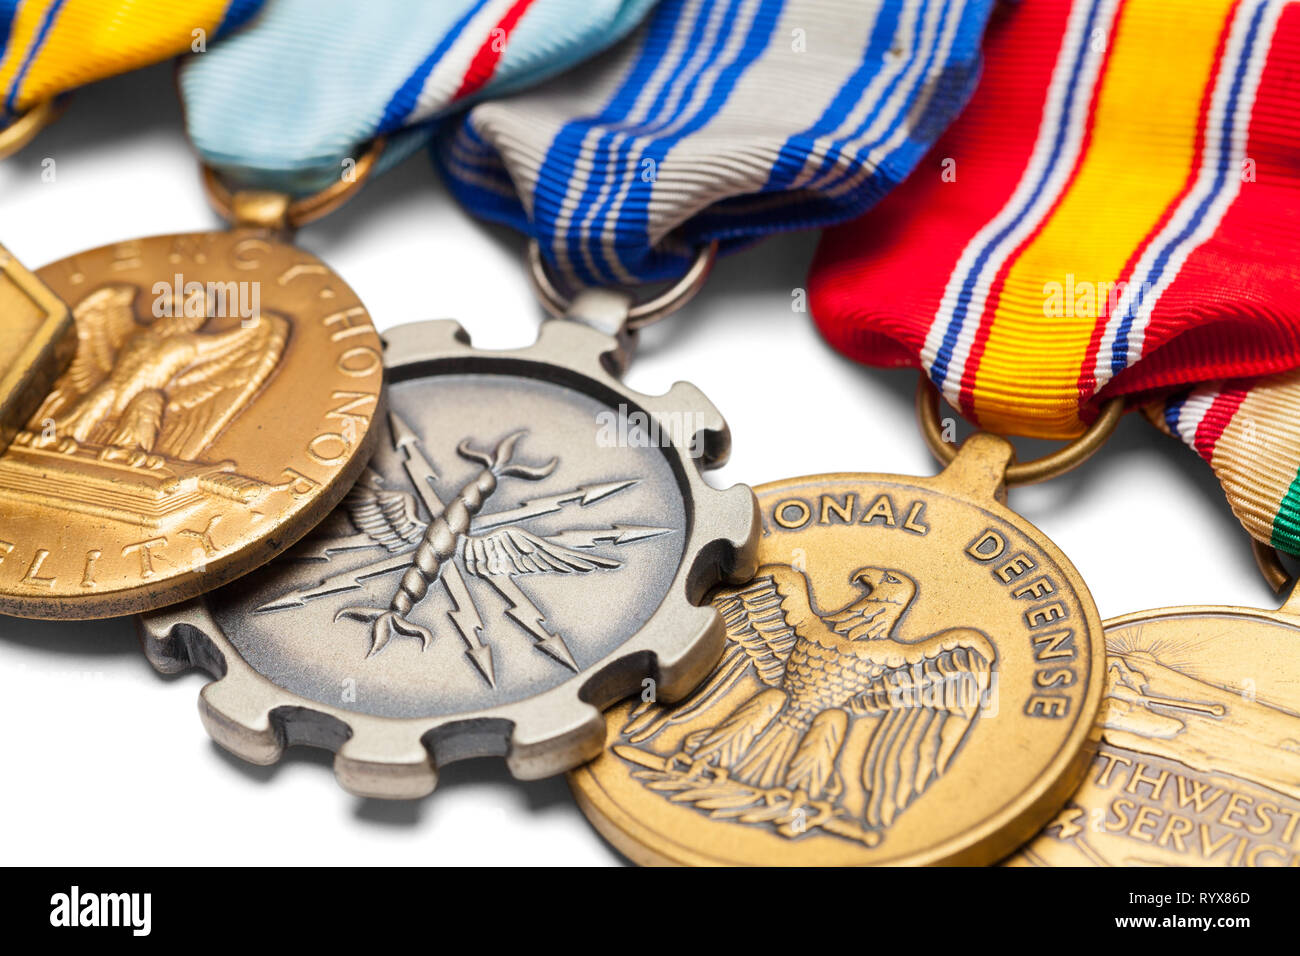 Close Up of US Military Medals in a Row. - Stock Image